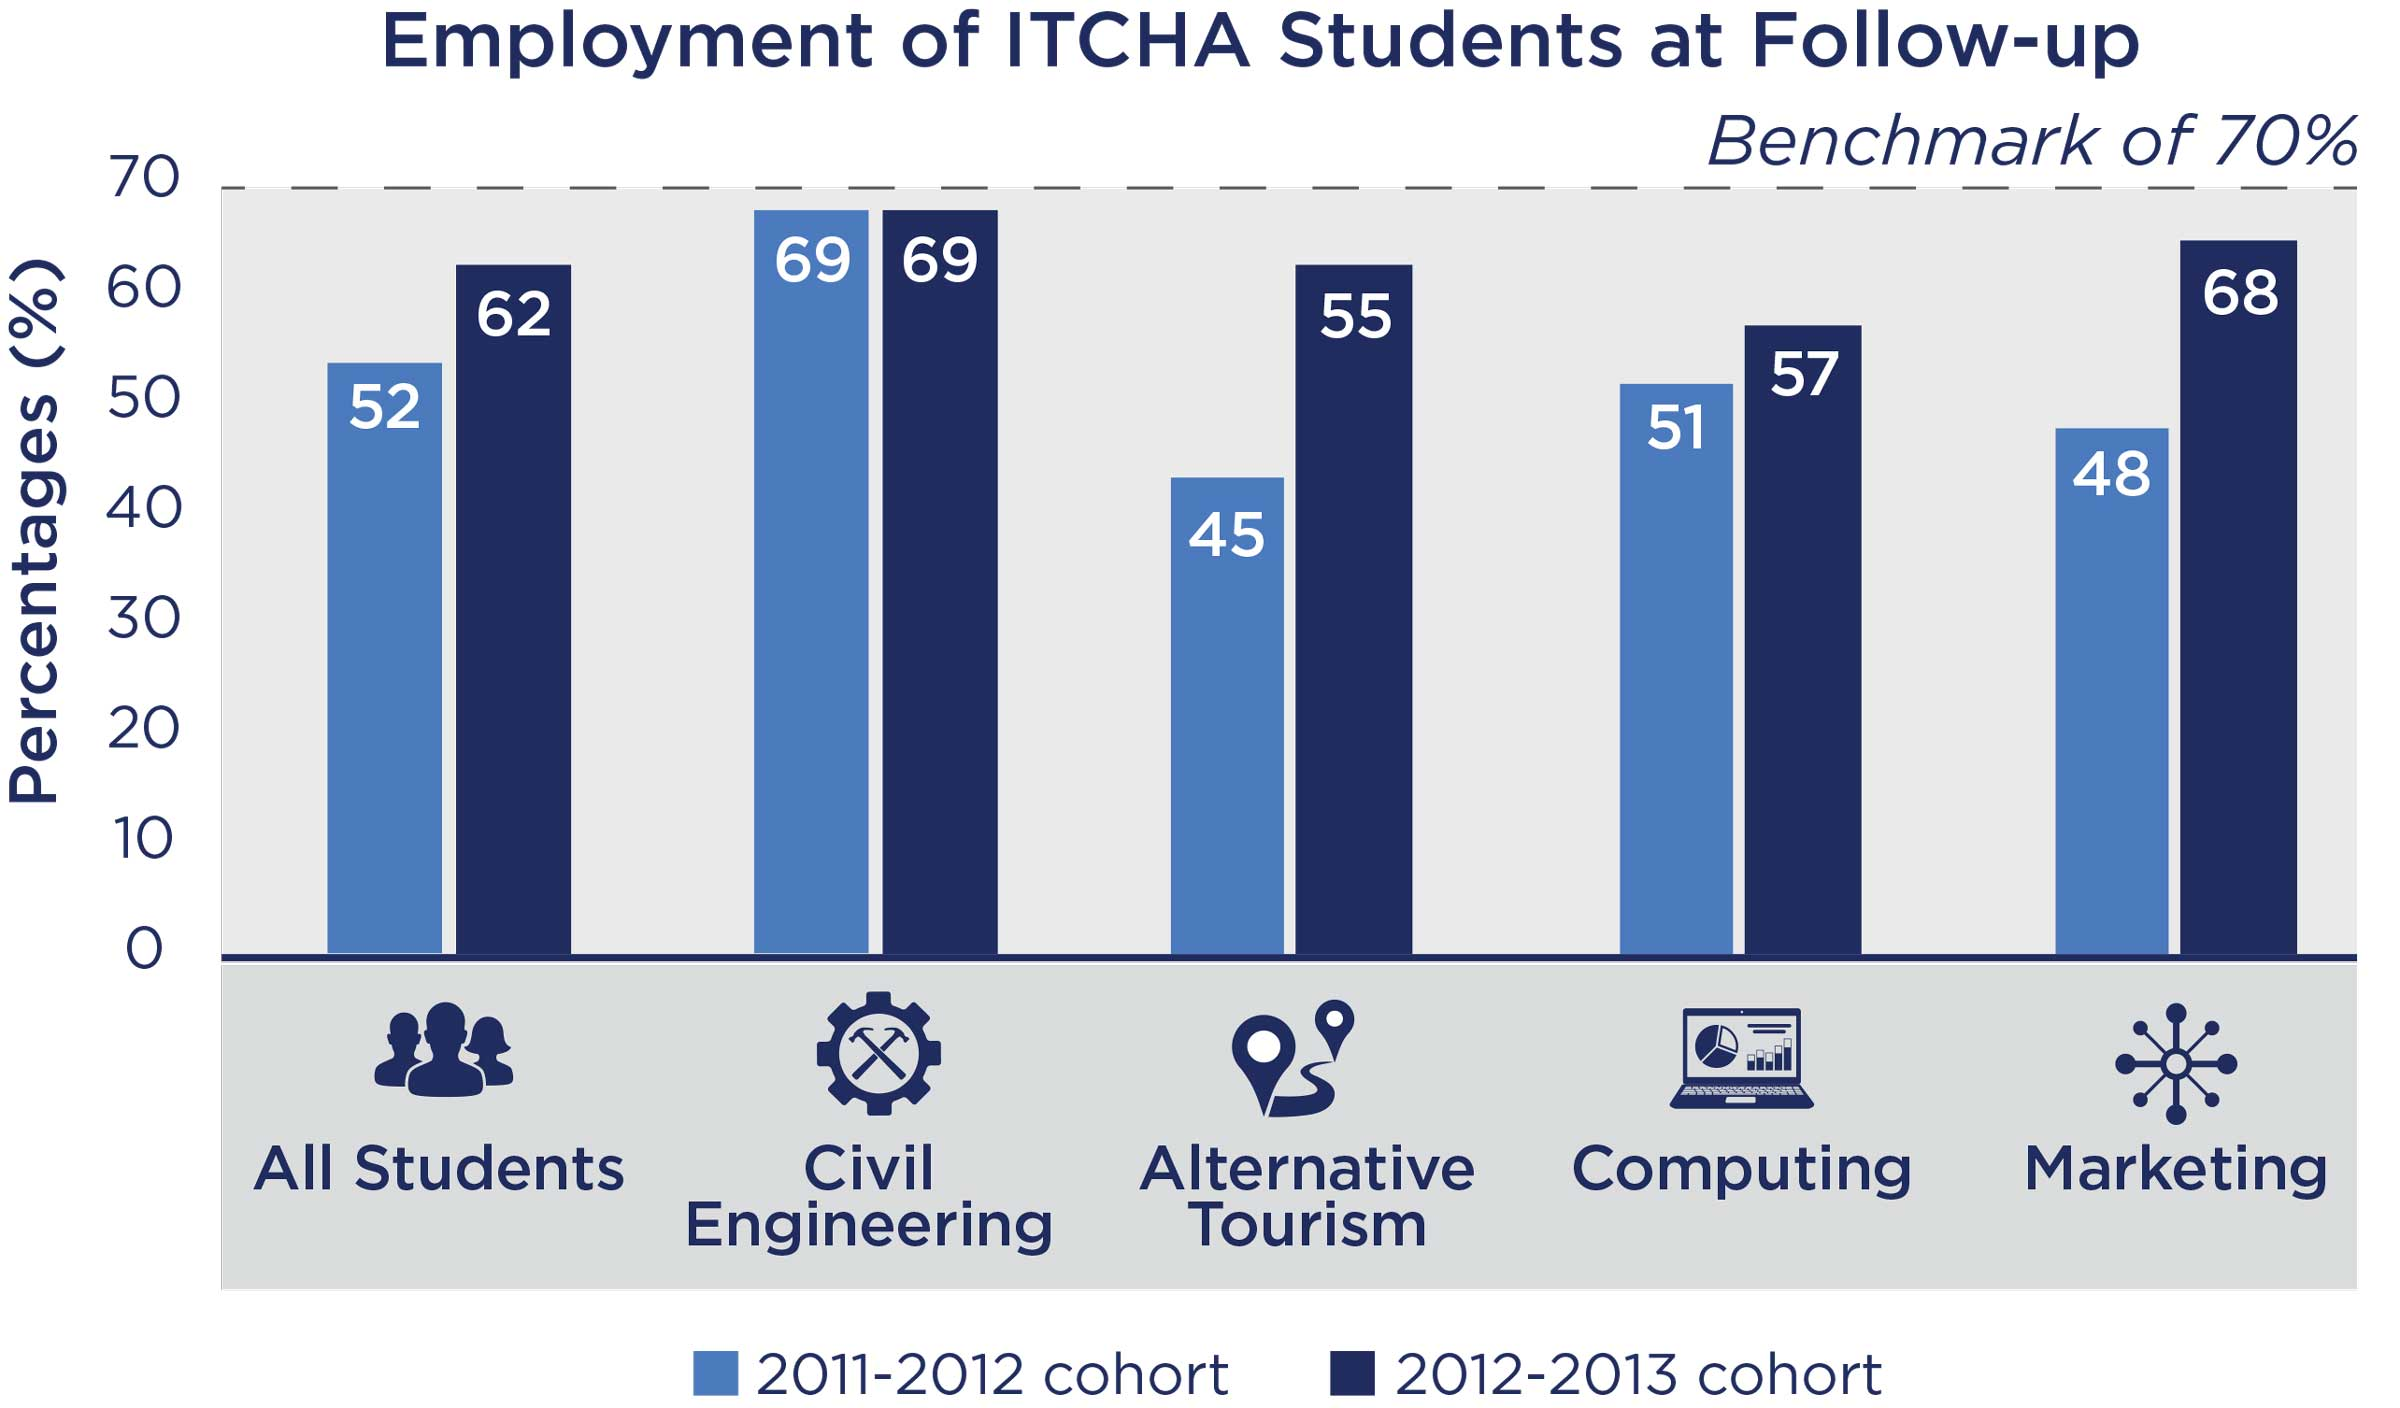 Employment of ITCHA Students at Follow-up